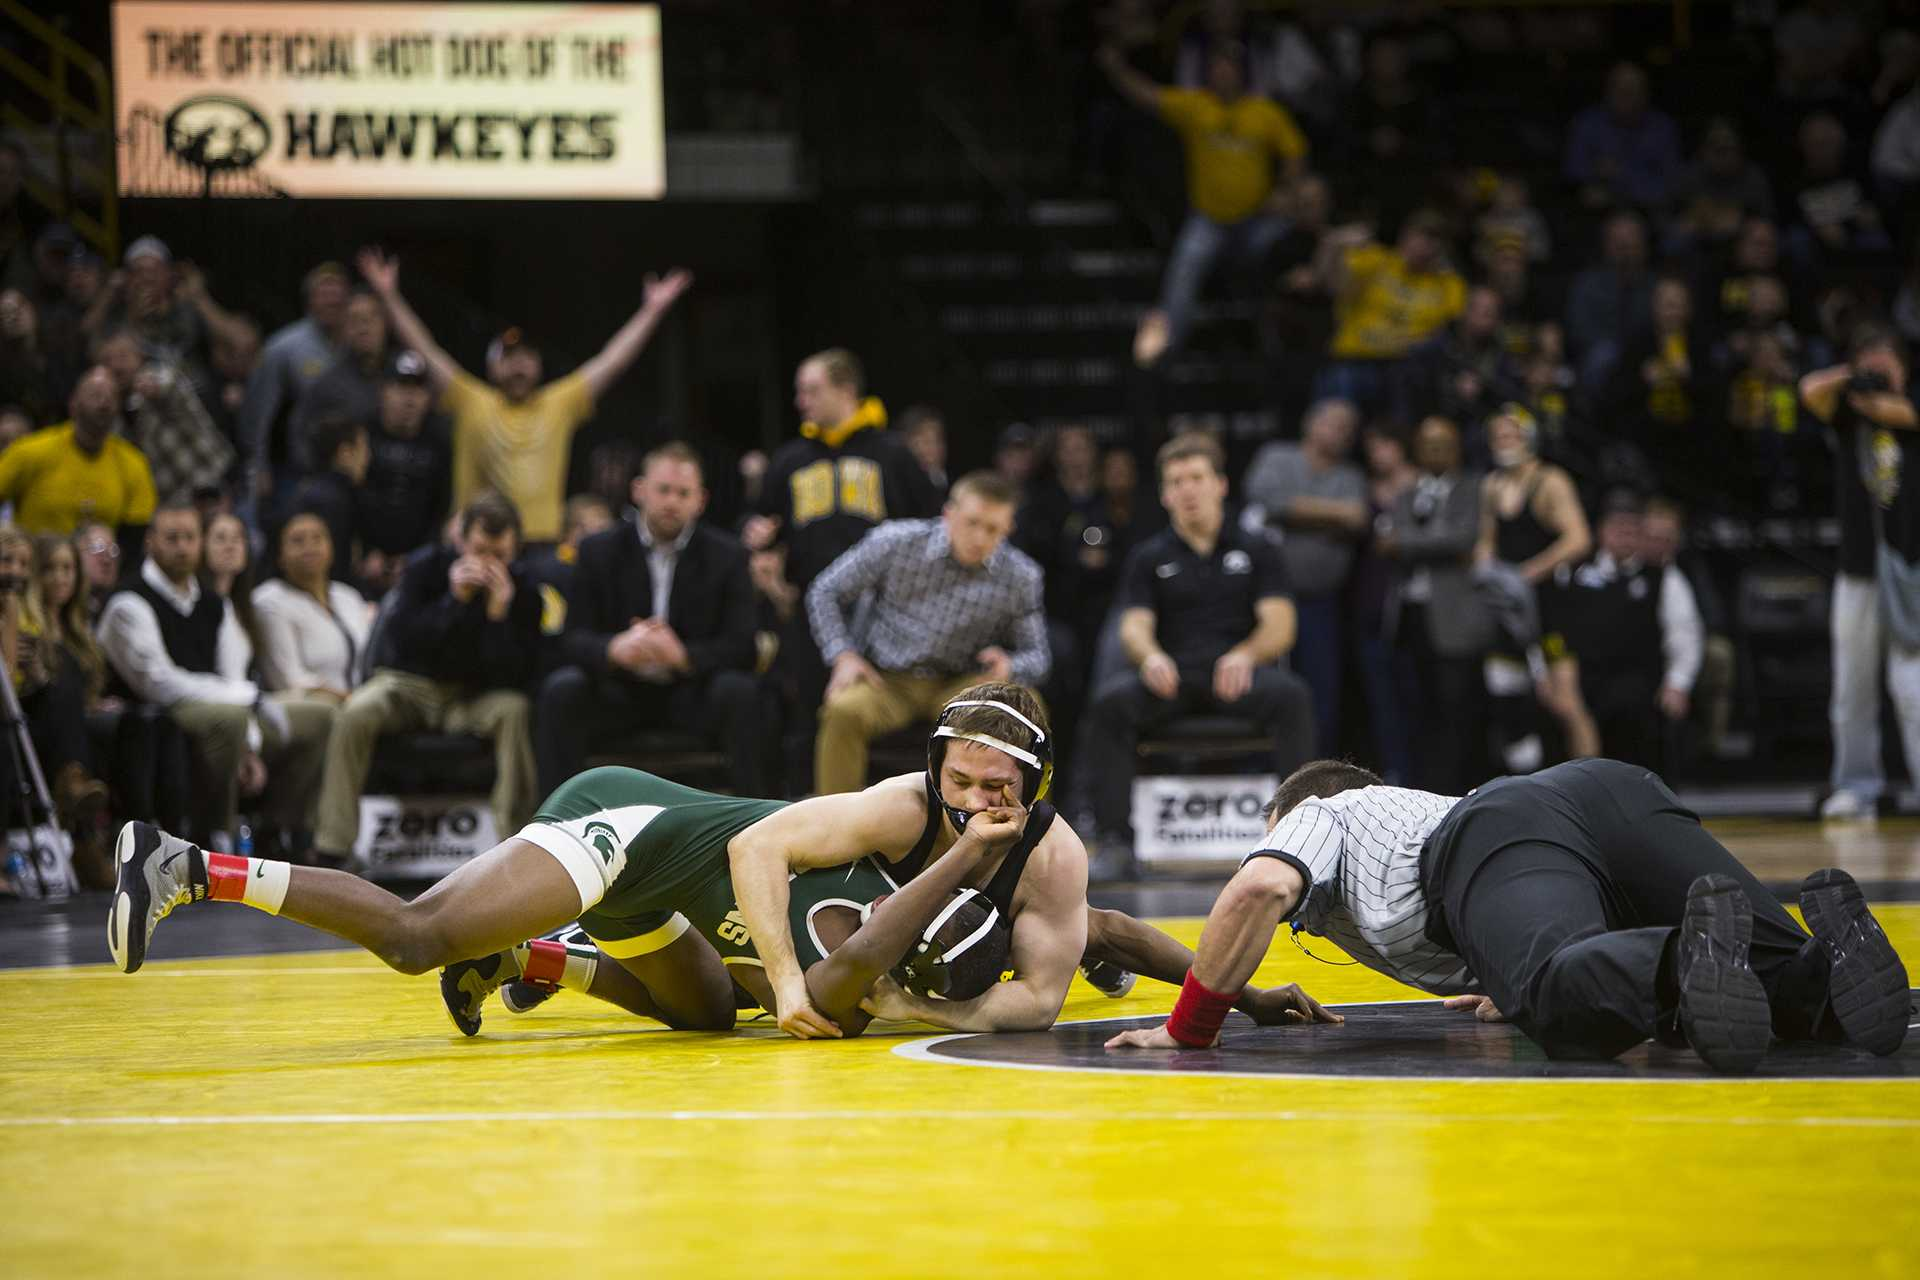 Iowa's 125-pound Spencer Lee pins Michigan State's Rayvon Foley during an Iowa/Michigan State wrestling matchup in Carver-Hawkeye Arena on Friday, Jan. 5, 2018. Lee pinned Foley in 0:46. (Joseph Cress/The Daily Iowan)